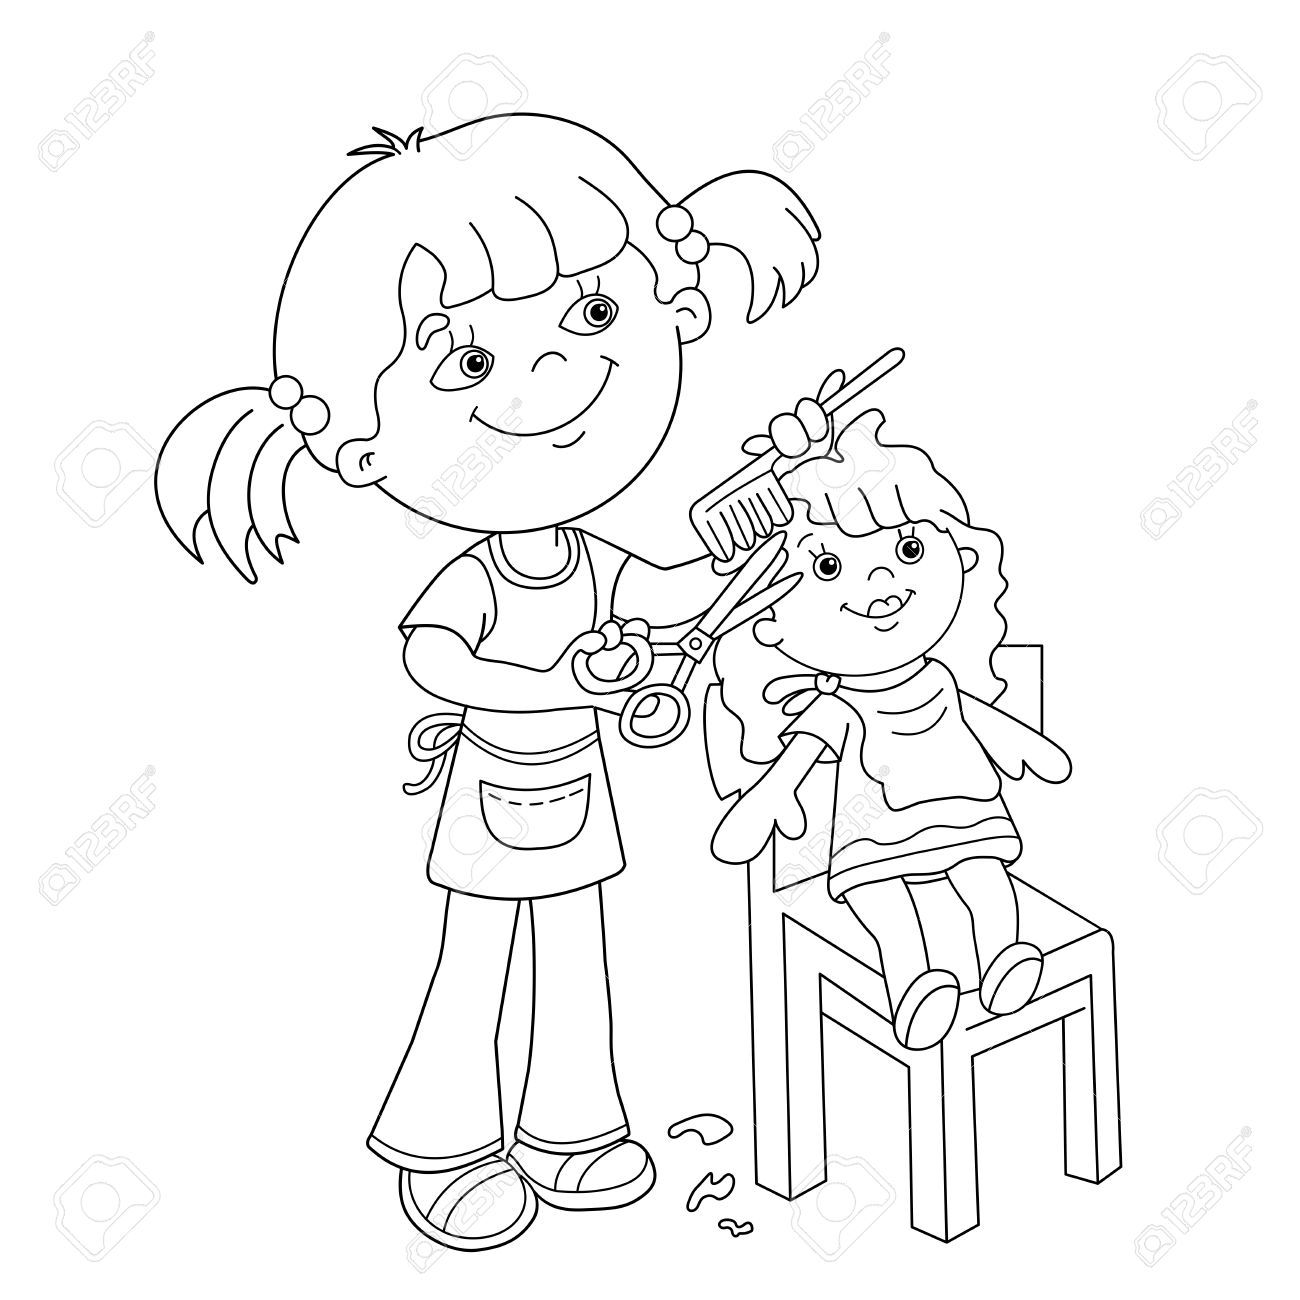 Co coloring book shop - Coloring Page Outline Of Cartoon Girl With Scissors And Comb Playing In The Barber Shop For